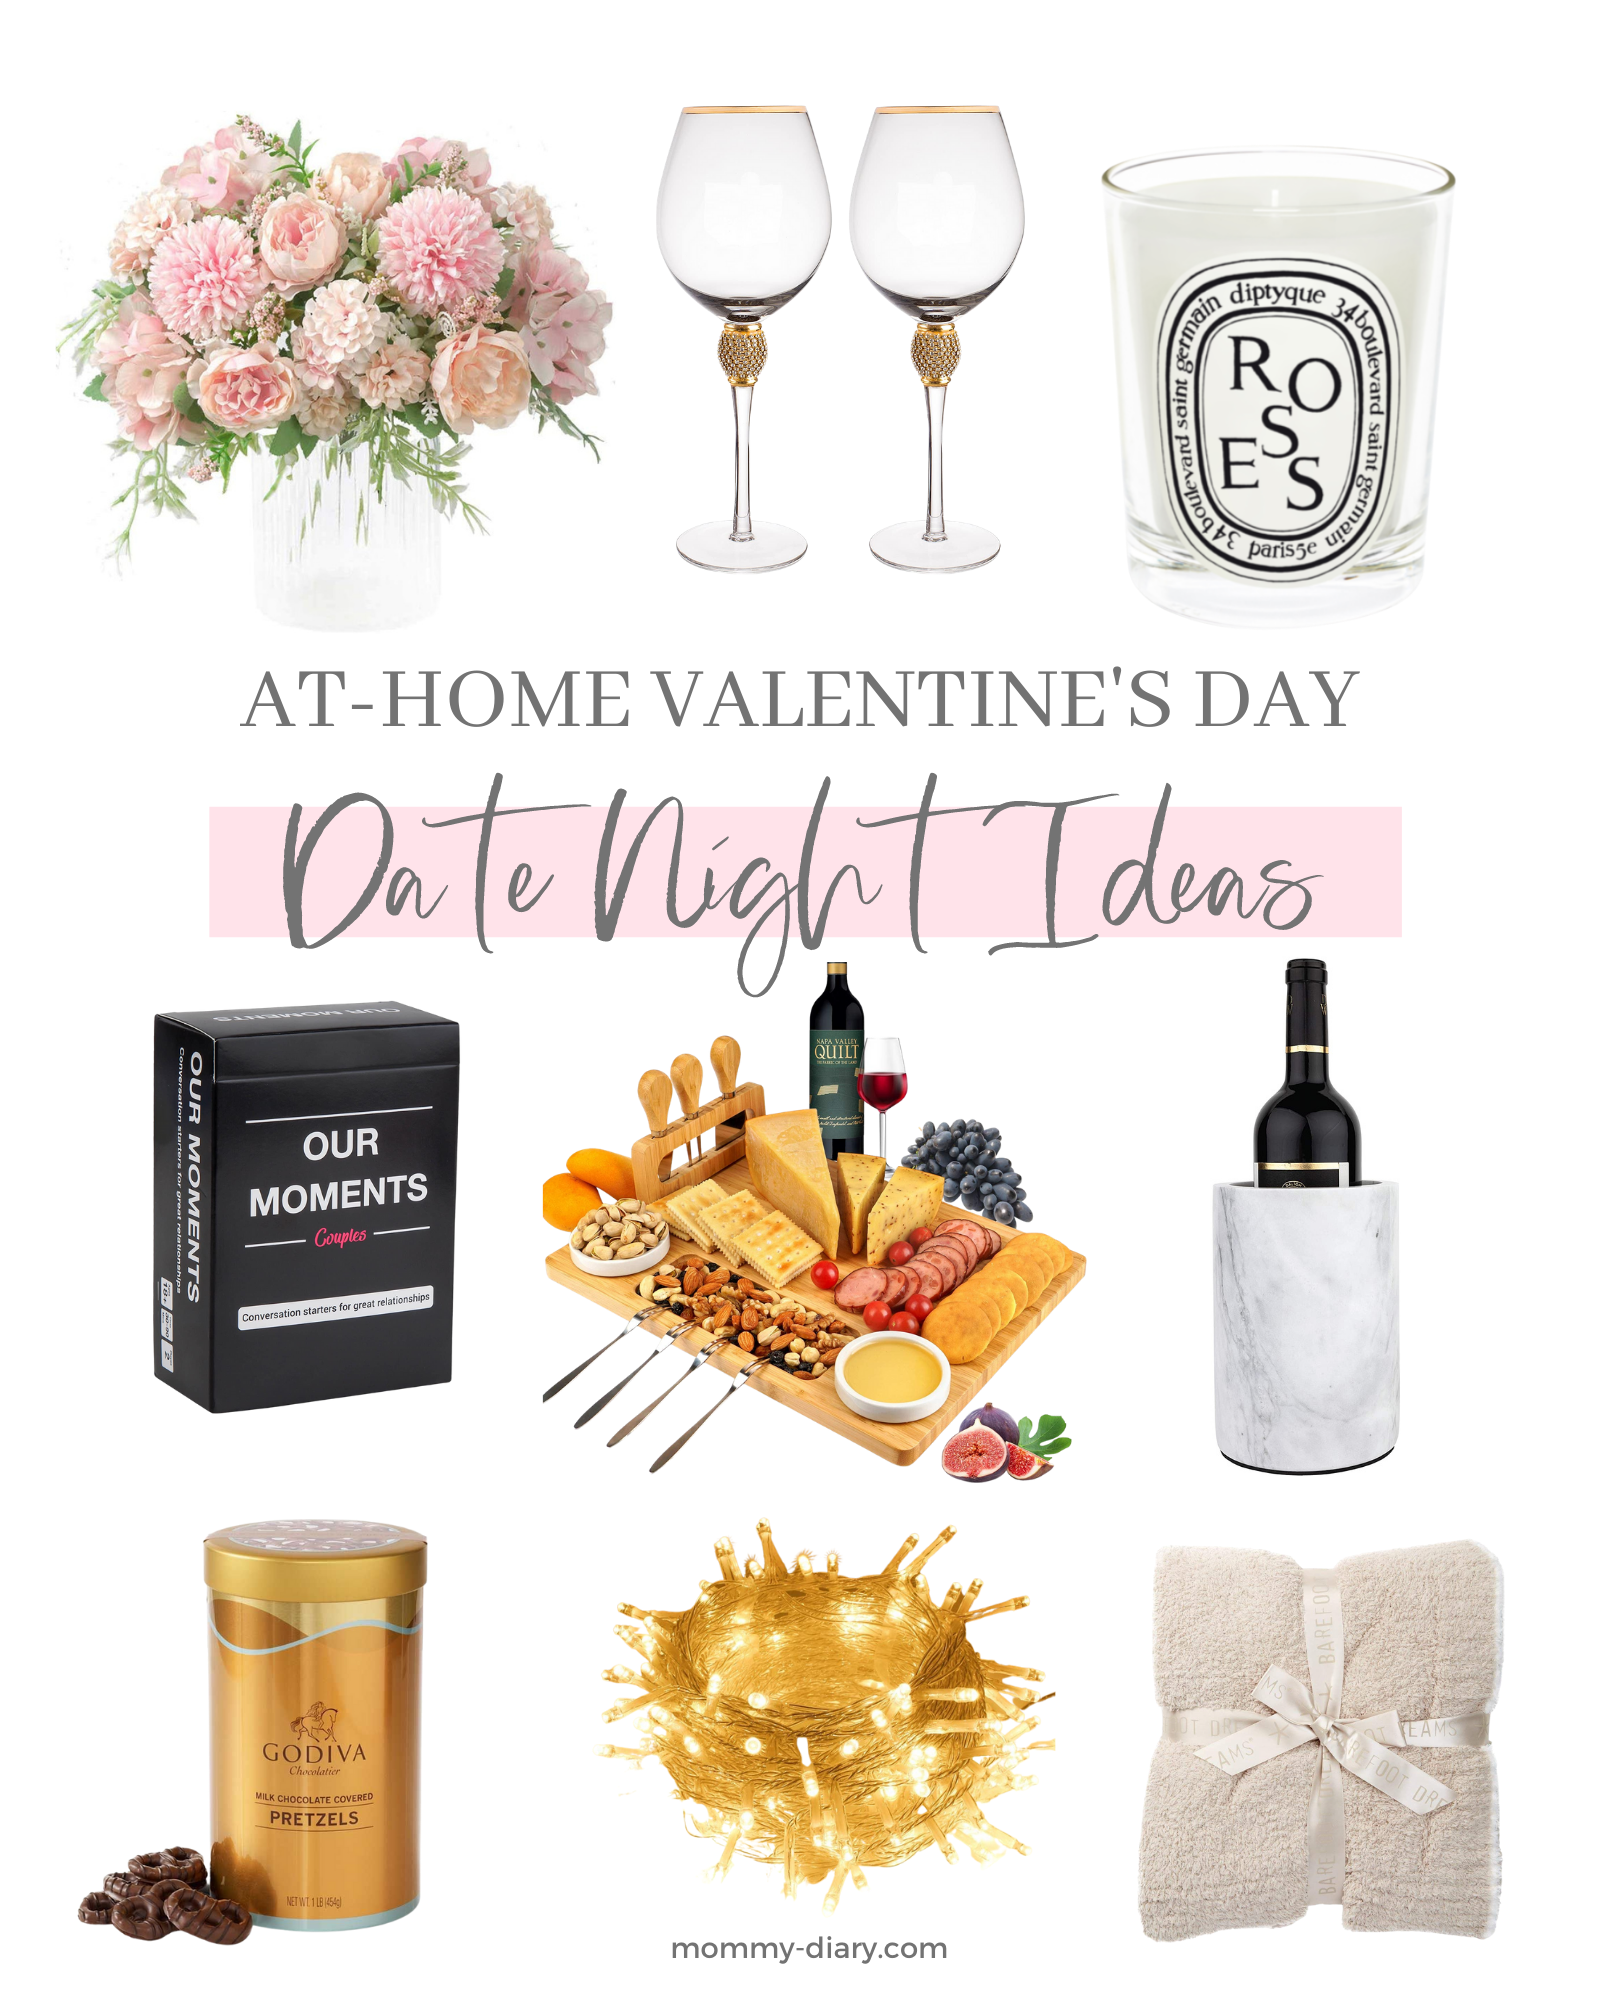 At-Home Valentine's Day Date Night Ideas